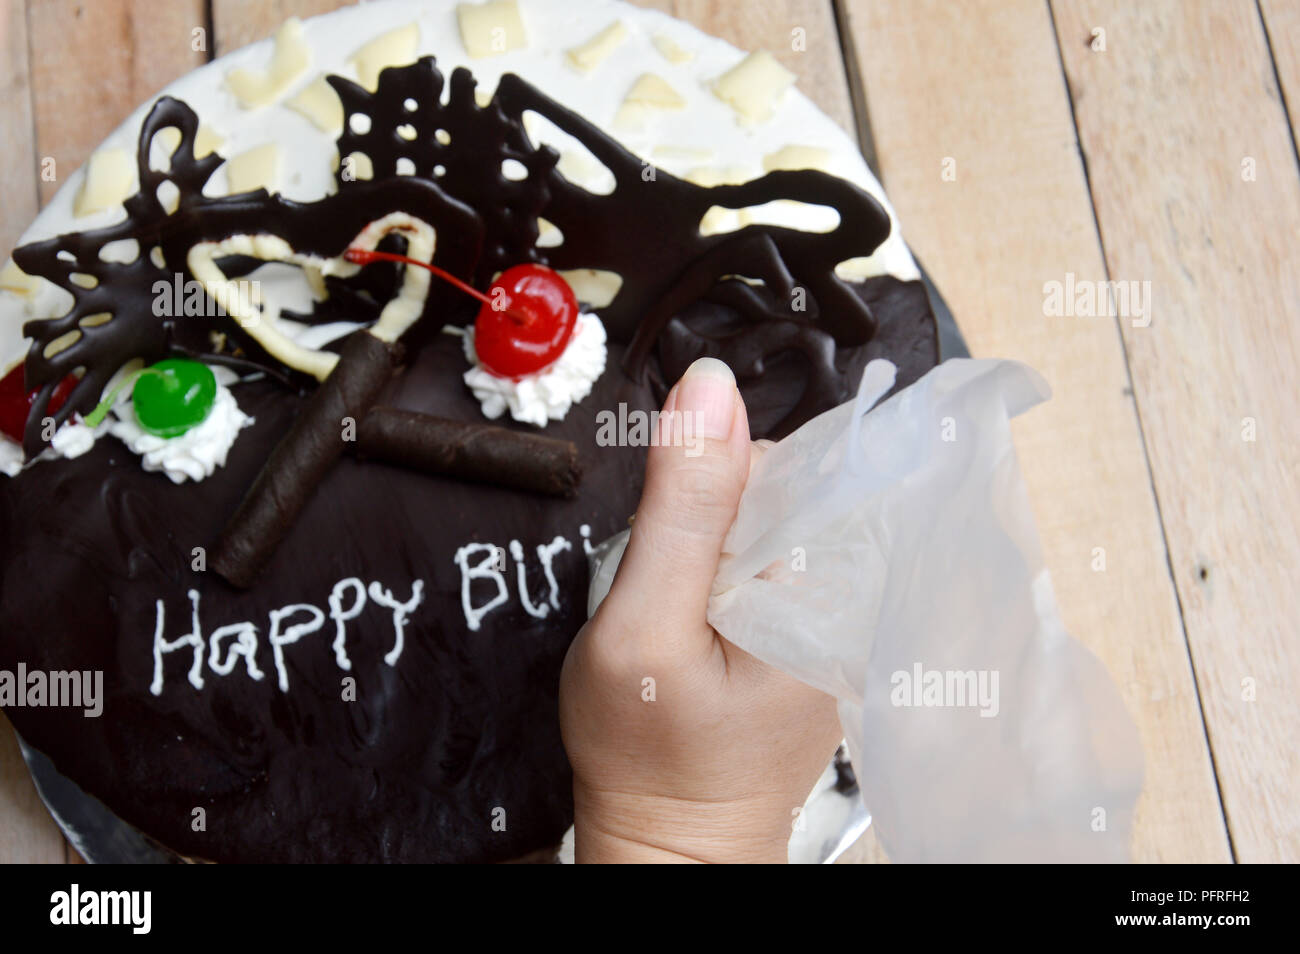 Awe Inspiring Woman Hand Writing At Birthday Cake On Wooden Table Stock Photo Funny Birthday Cards Online Sheoxdamsfinfo